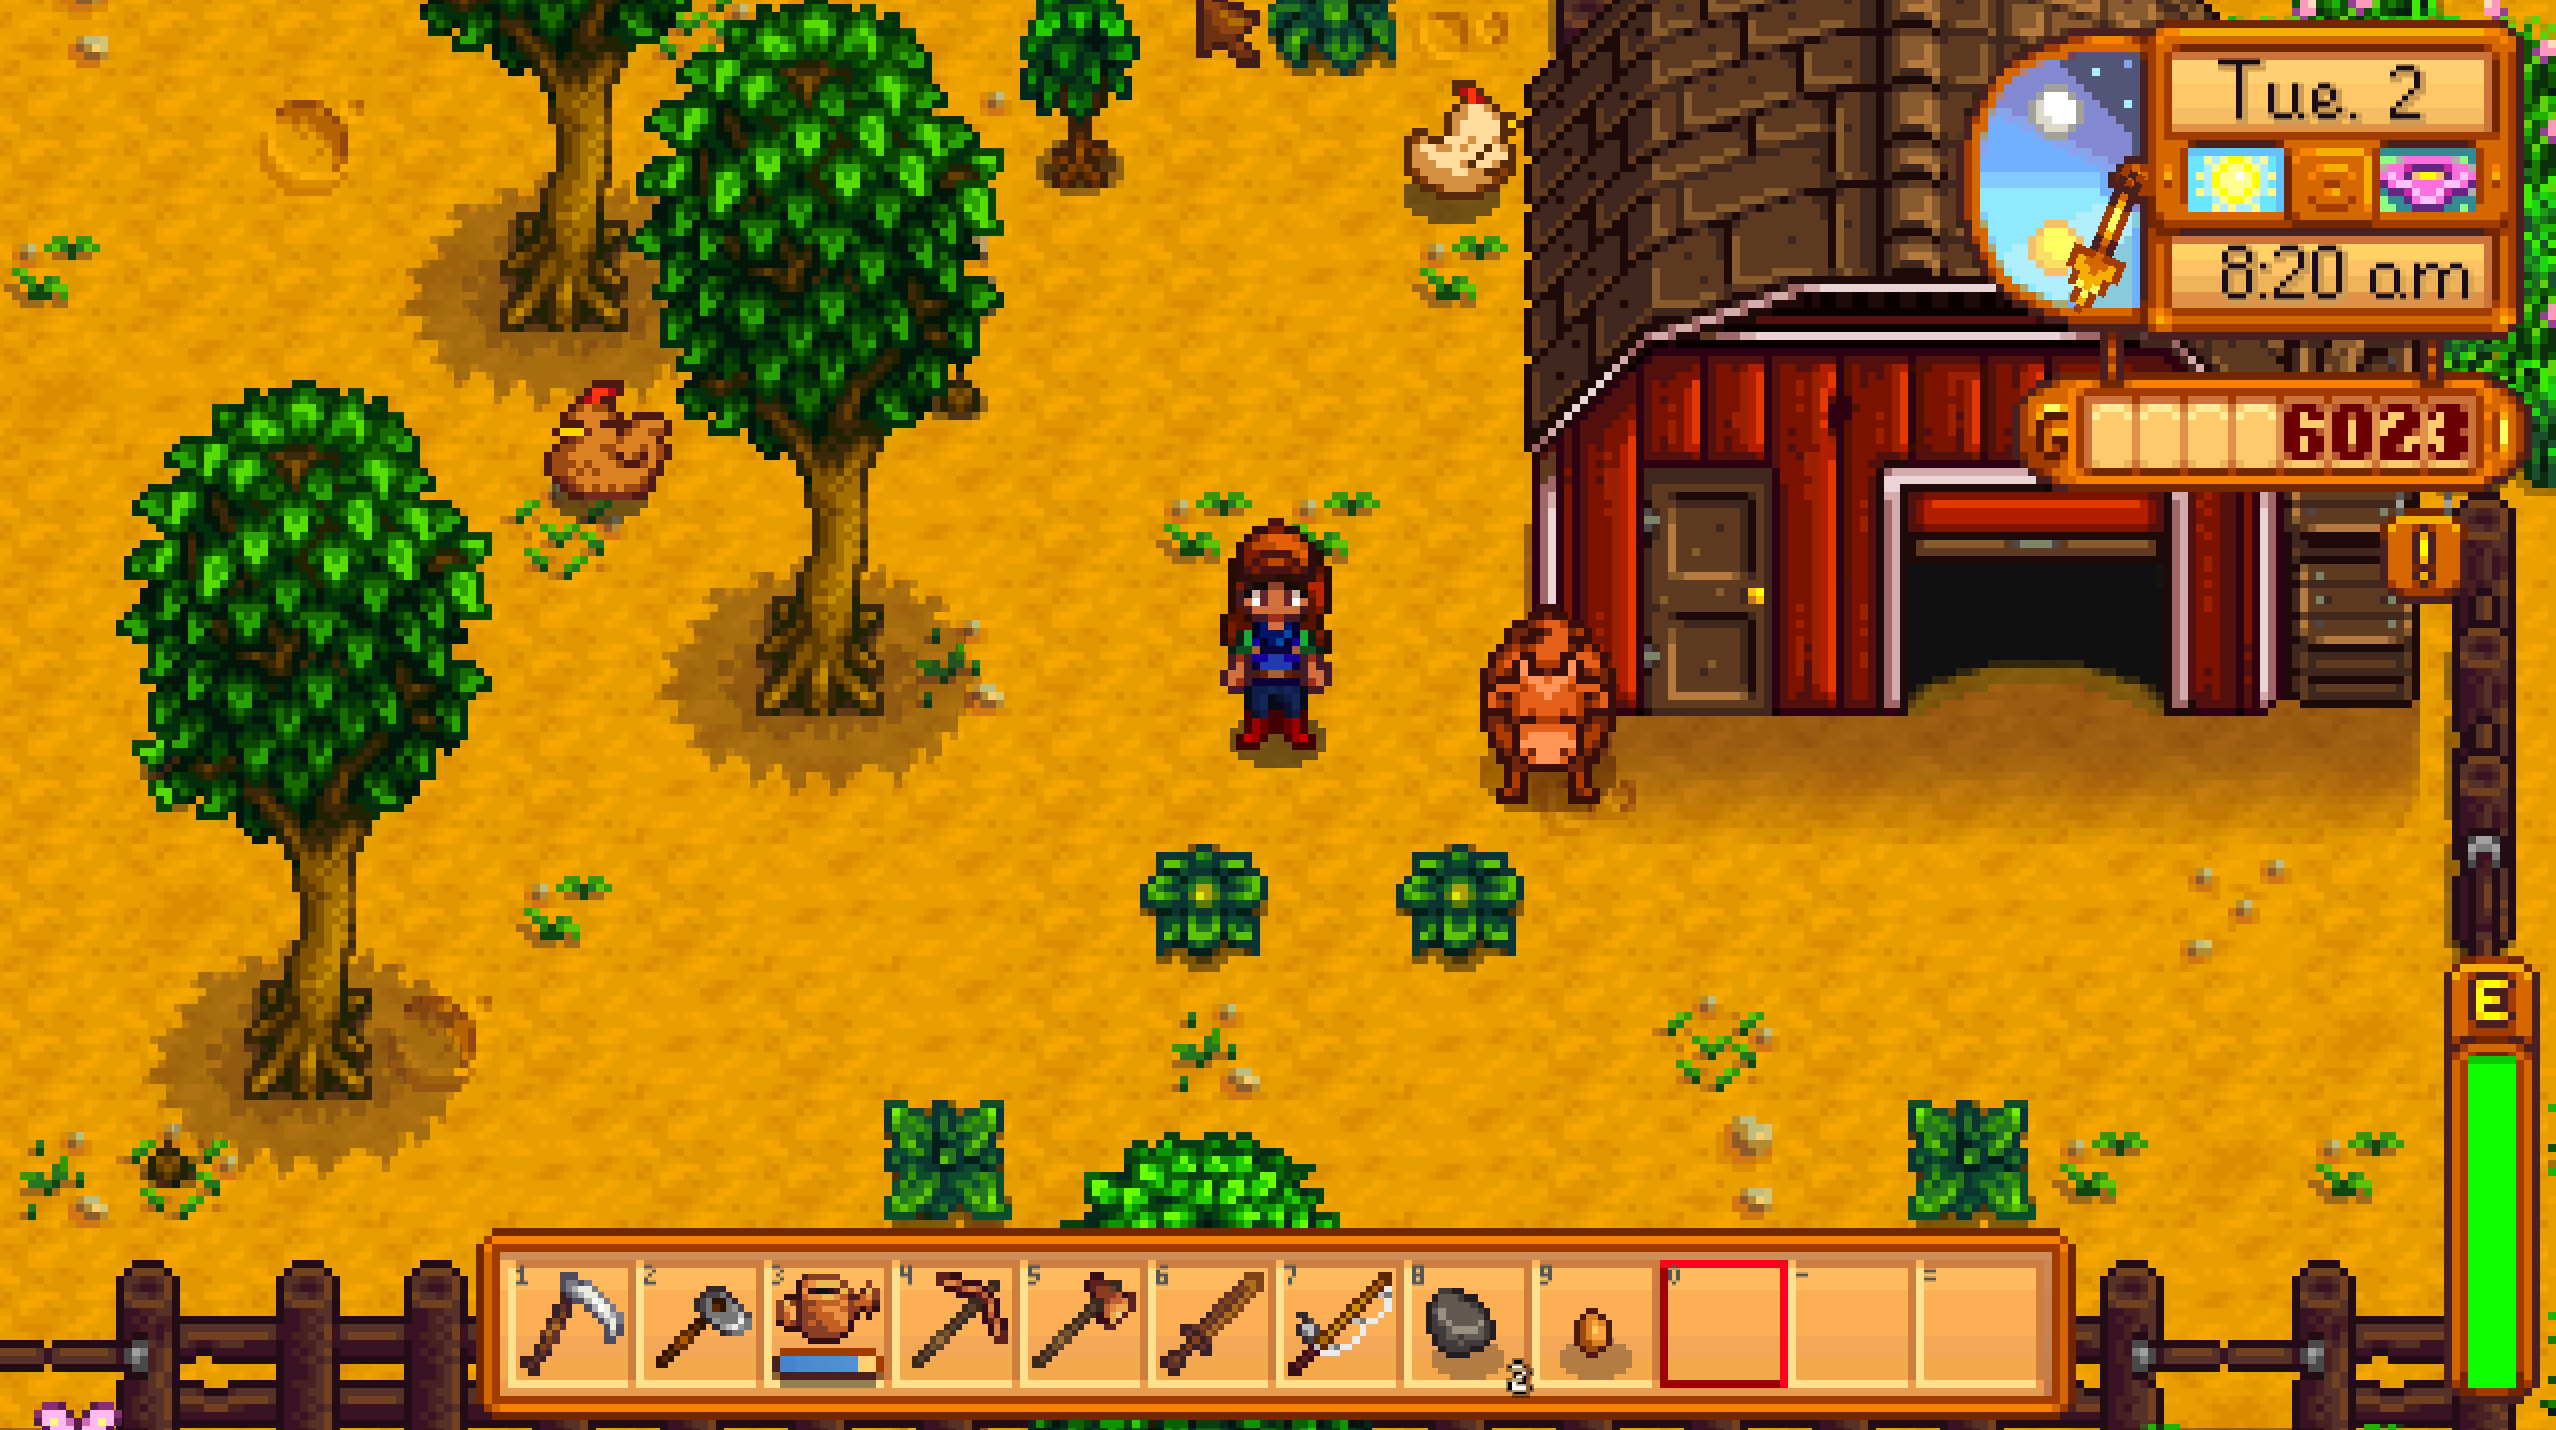 Dumpster diving and pickling pumpkins: ecocritical possibilities in Stardew Valley